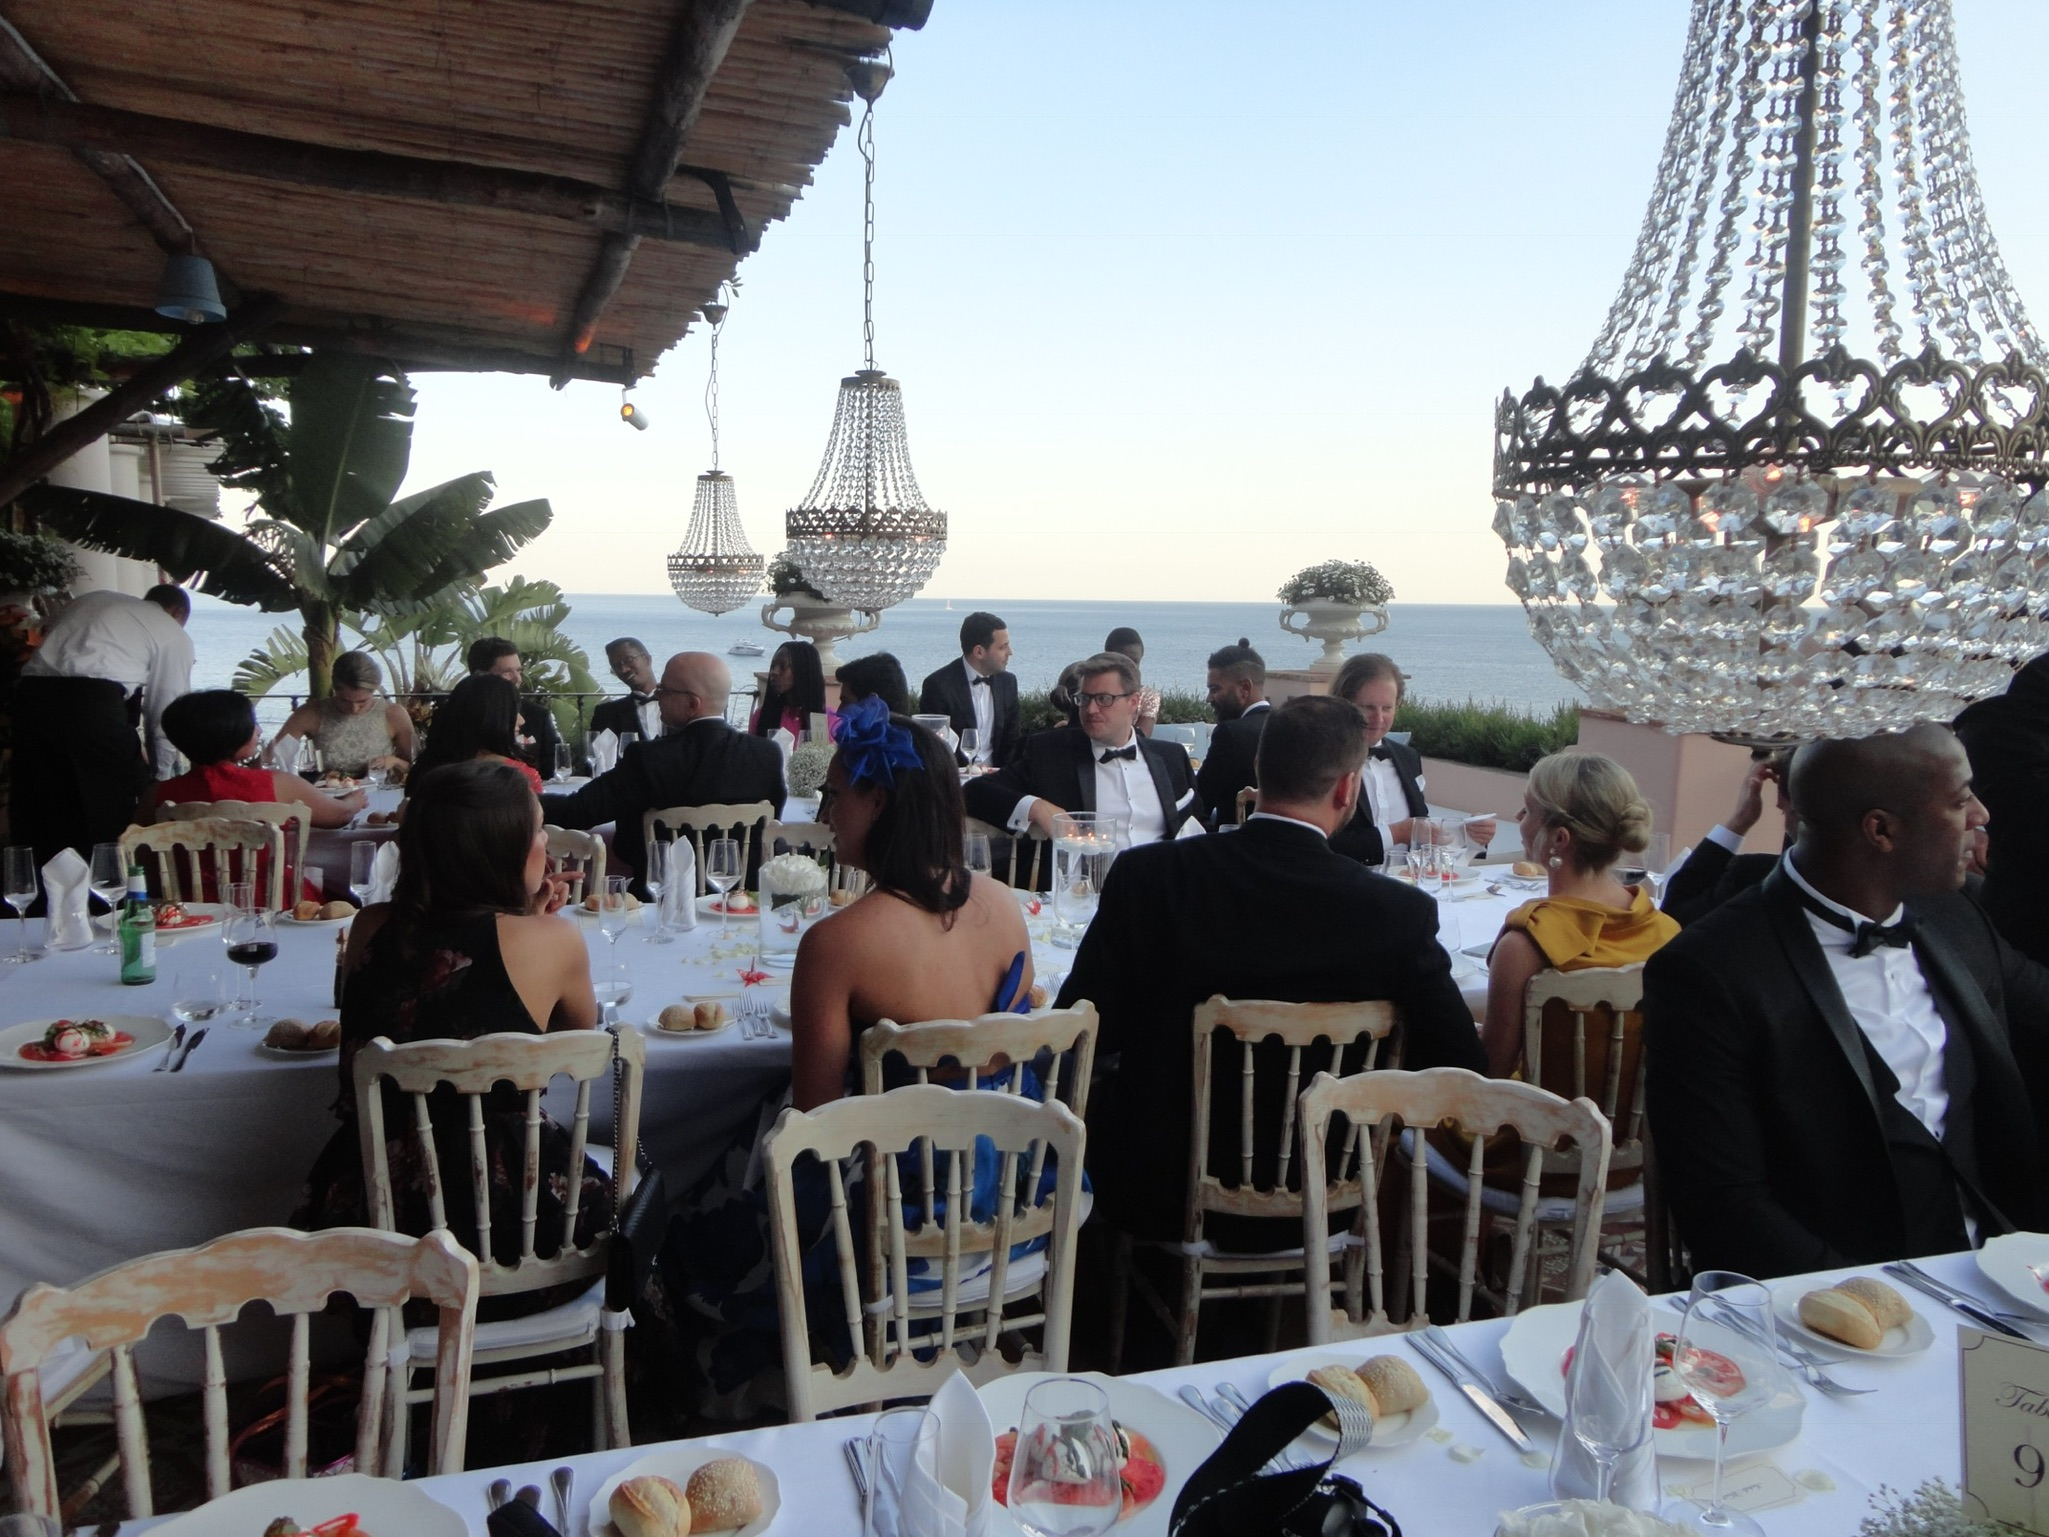 http://www.weddingamalfi.com/wp-content/uploads/Nathalie-and-Benjamin-Wedding-in-Positano-Italy-9.jpg